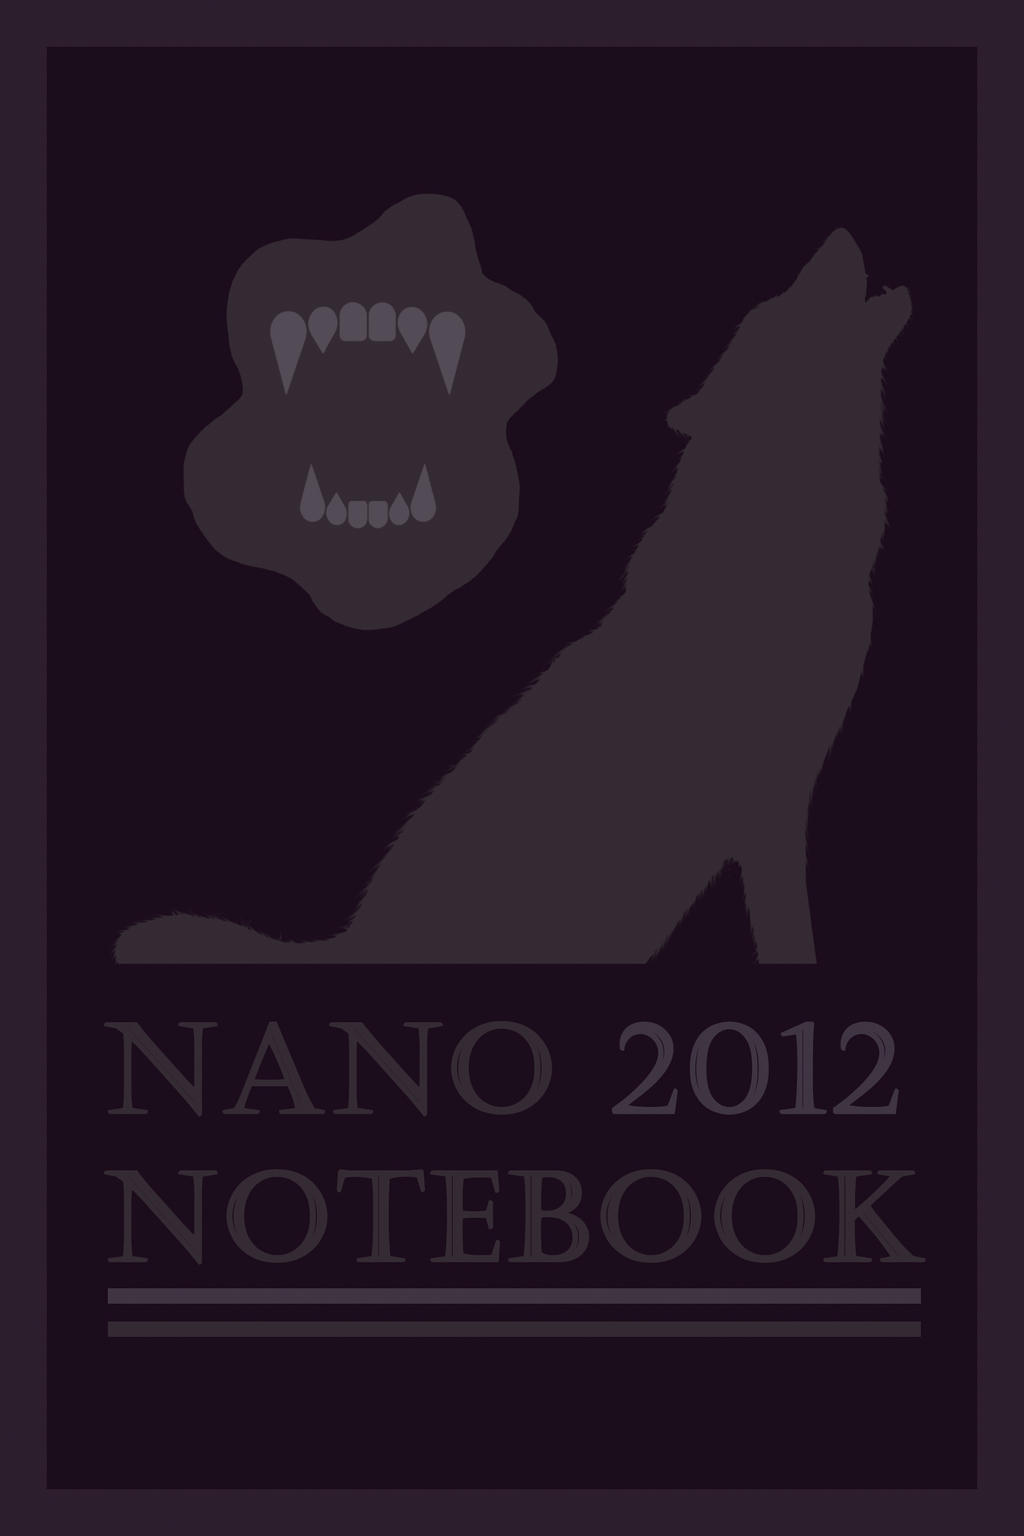 My NaNo Notebook Cover by Margie22